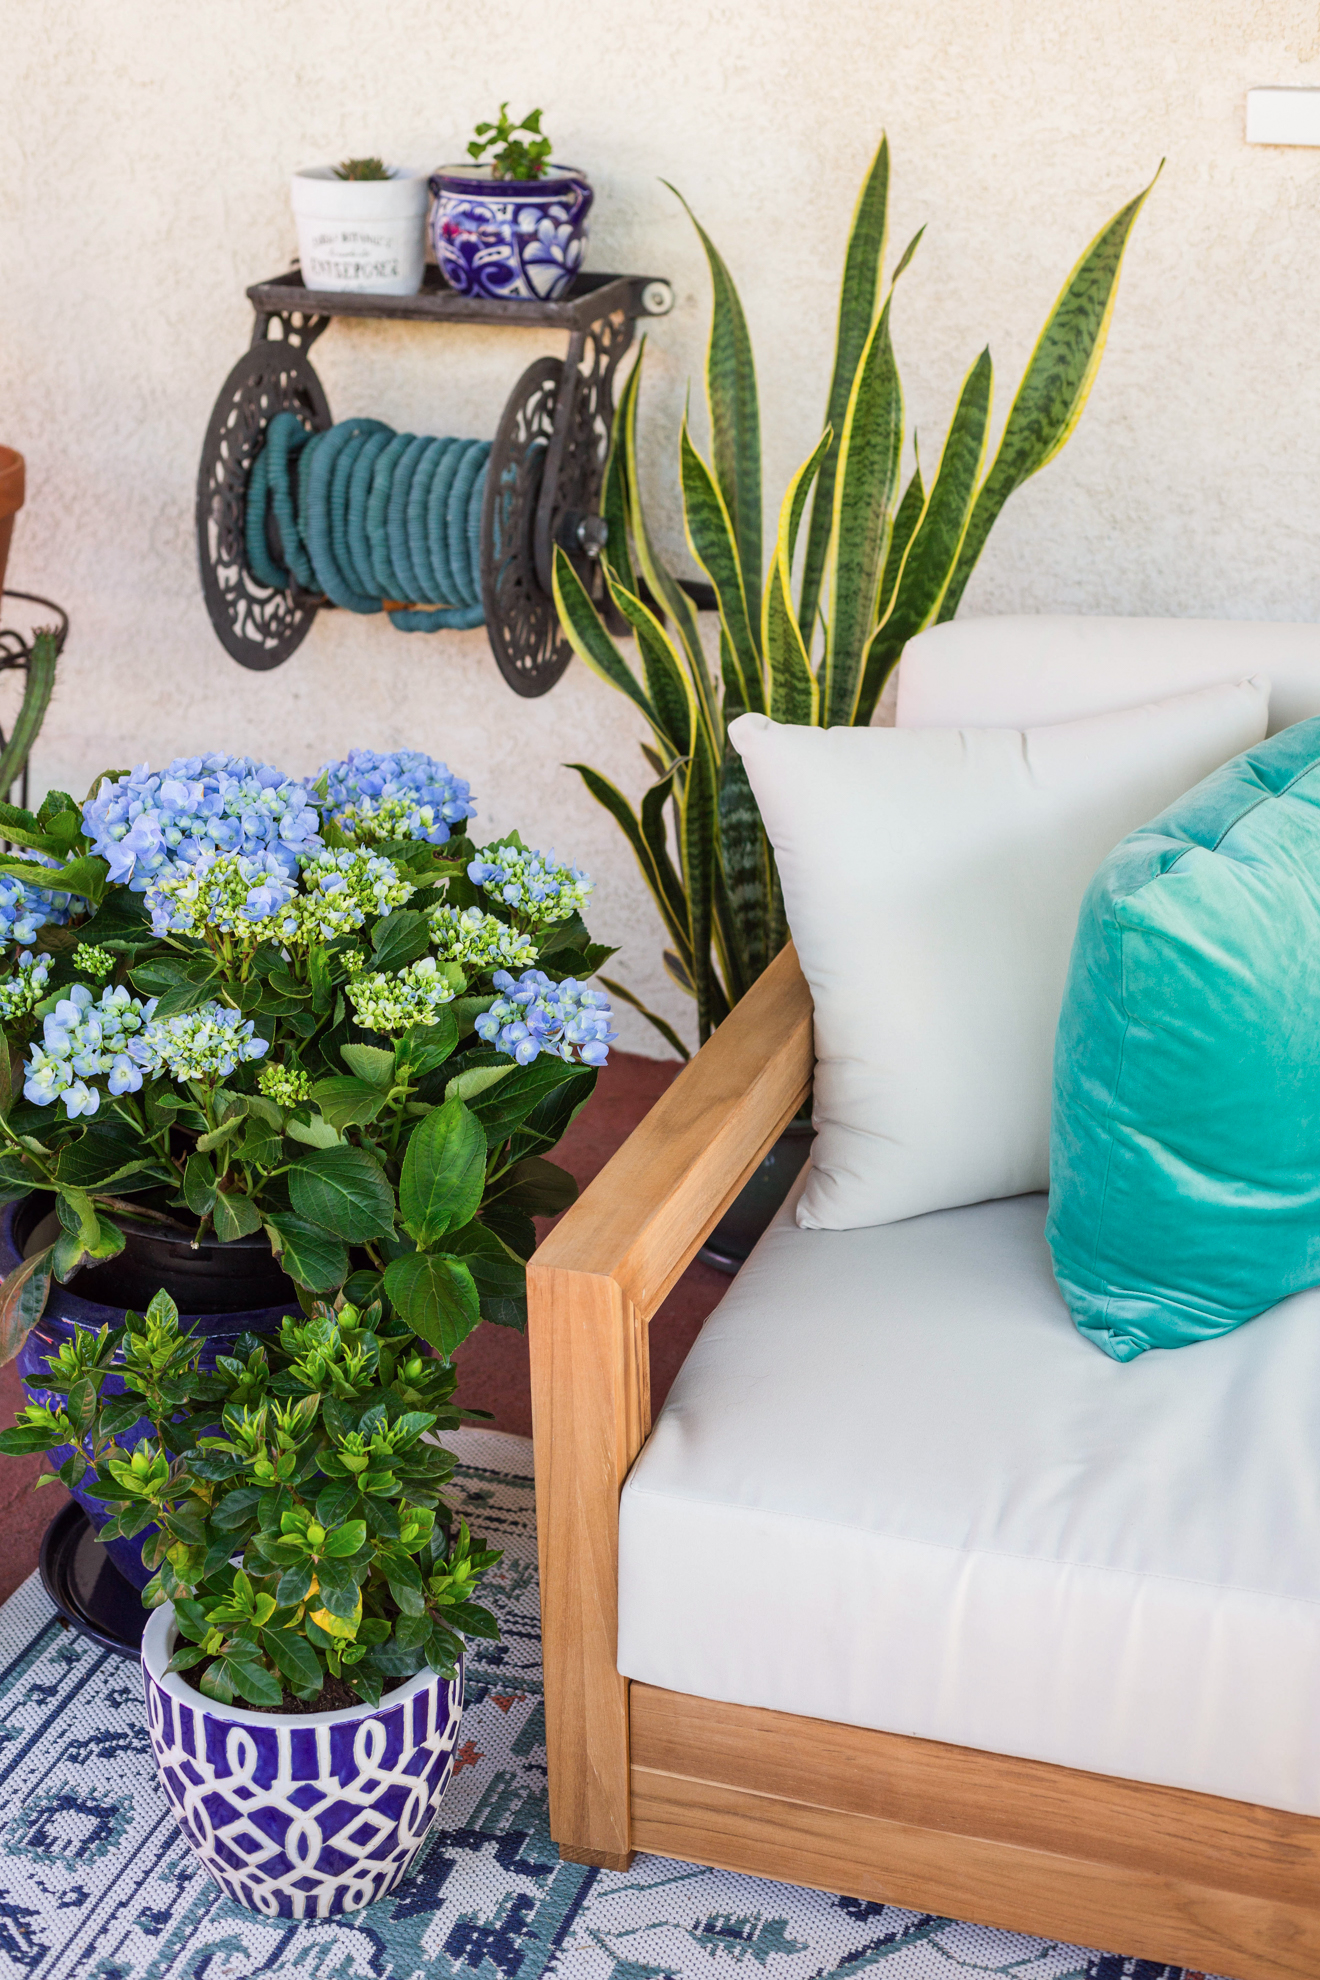 Bed Bath And Beyond Outdoor Cushions : beyond, outdoor, cushions, Patio, Decor, Ideas, Beyond, Laura